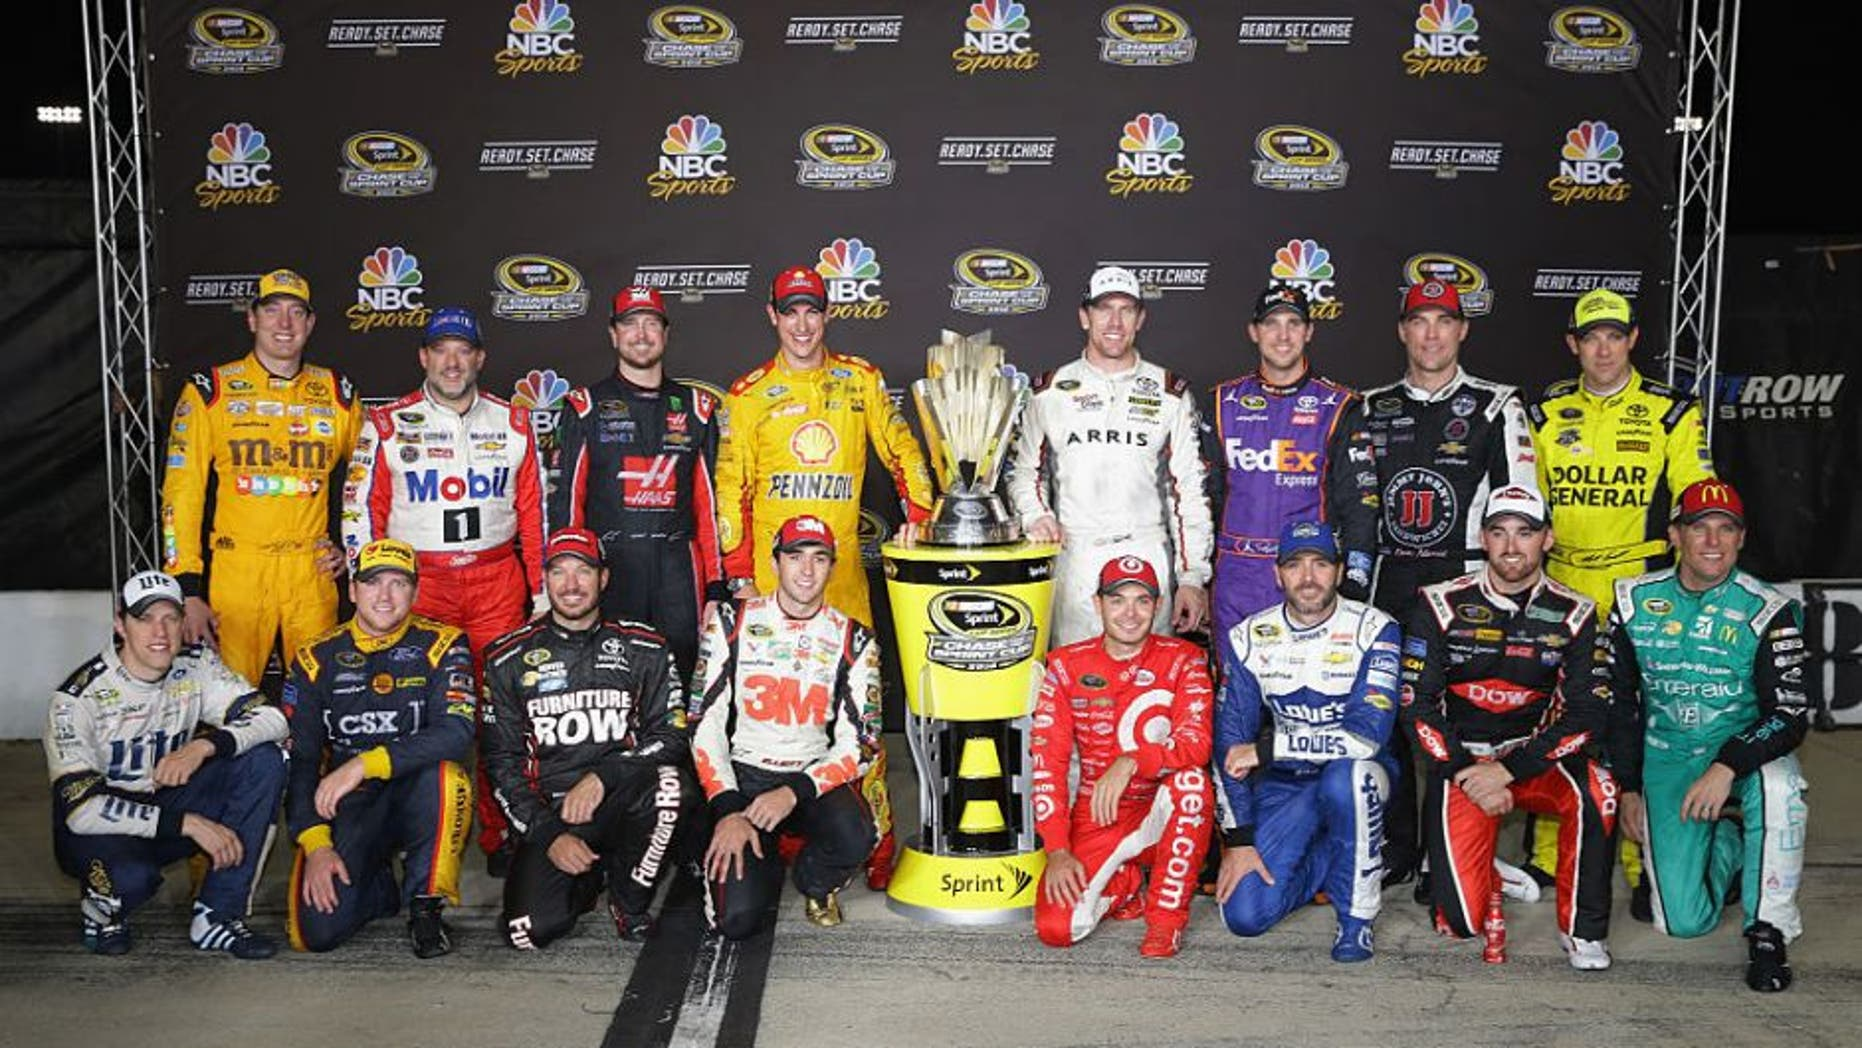 RICHMOND, VA - SEPTEMBER 10: 2016 Chase for the Sprint Cup drivers pose for a photo after the NASCAR Sprint Cup Series Federated Auto Parts 400 at Richmond International Raceway on September 10, 2016 in Richmond, Virginia. (Photo by Chris Graythen/NASCAR via Getty Images)